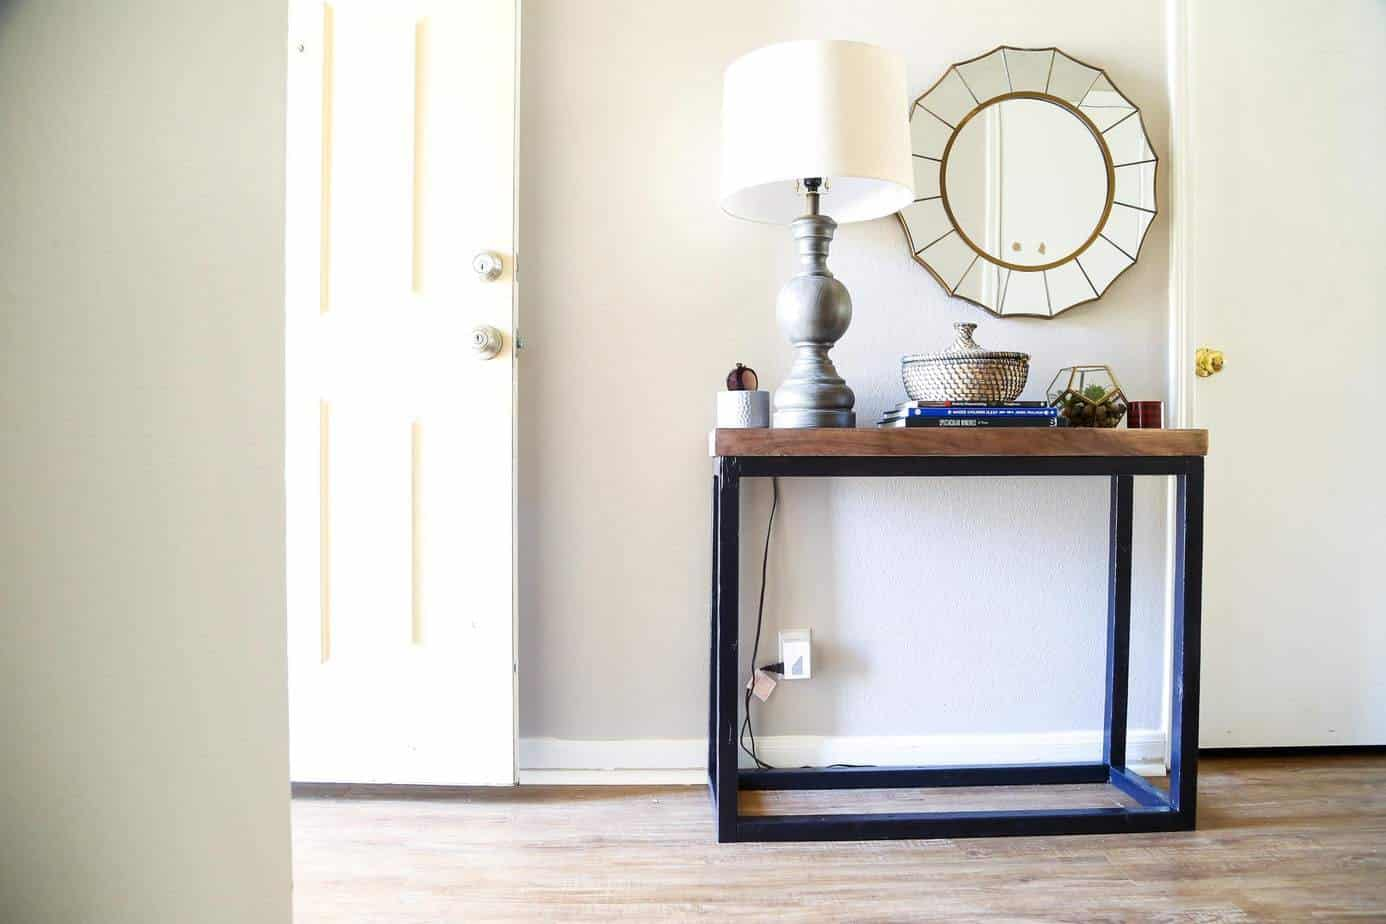 How to build a DIY entry table